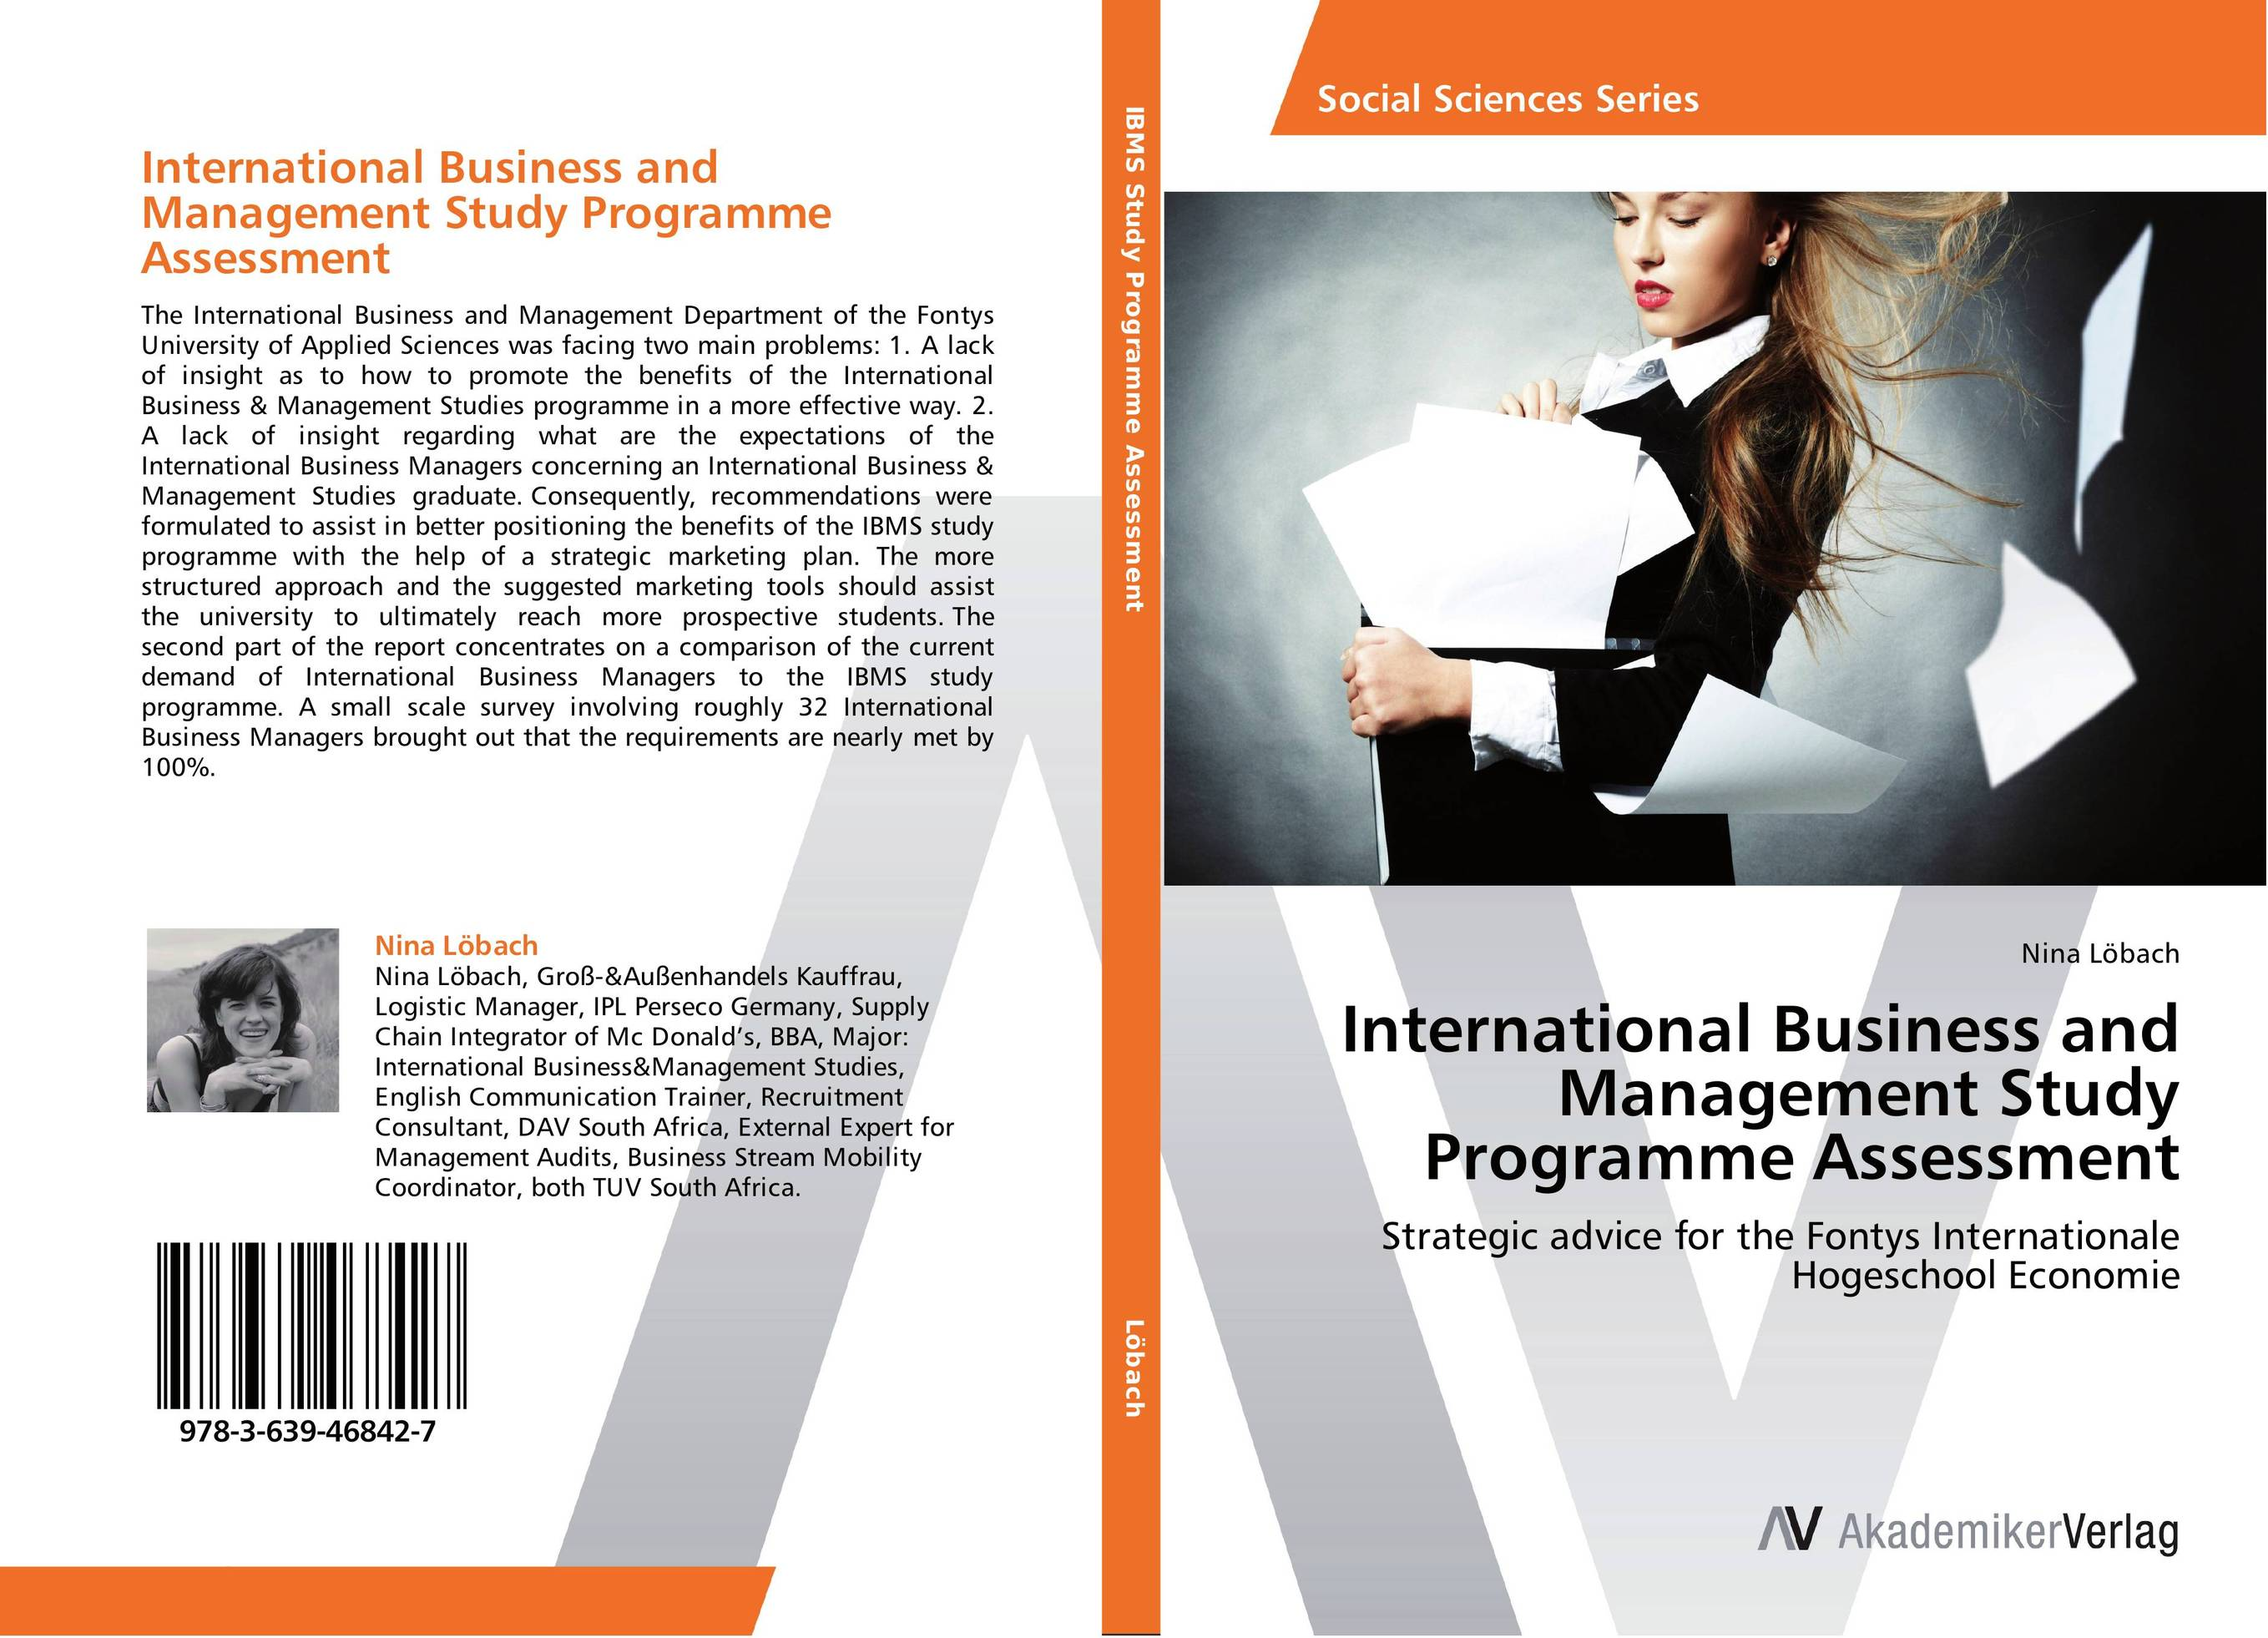 International Business and Management Study Programme Assessment point systems migration policy and international students flow